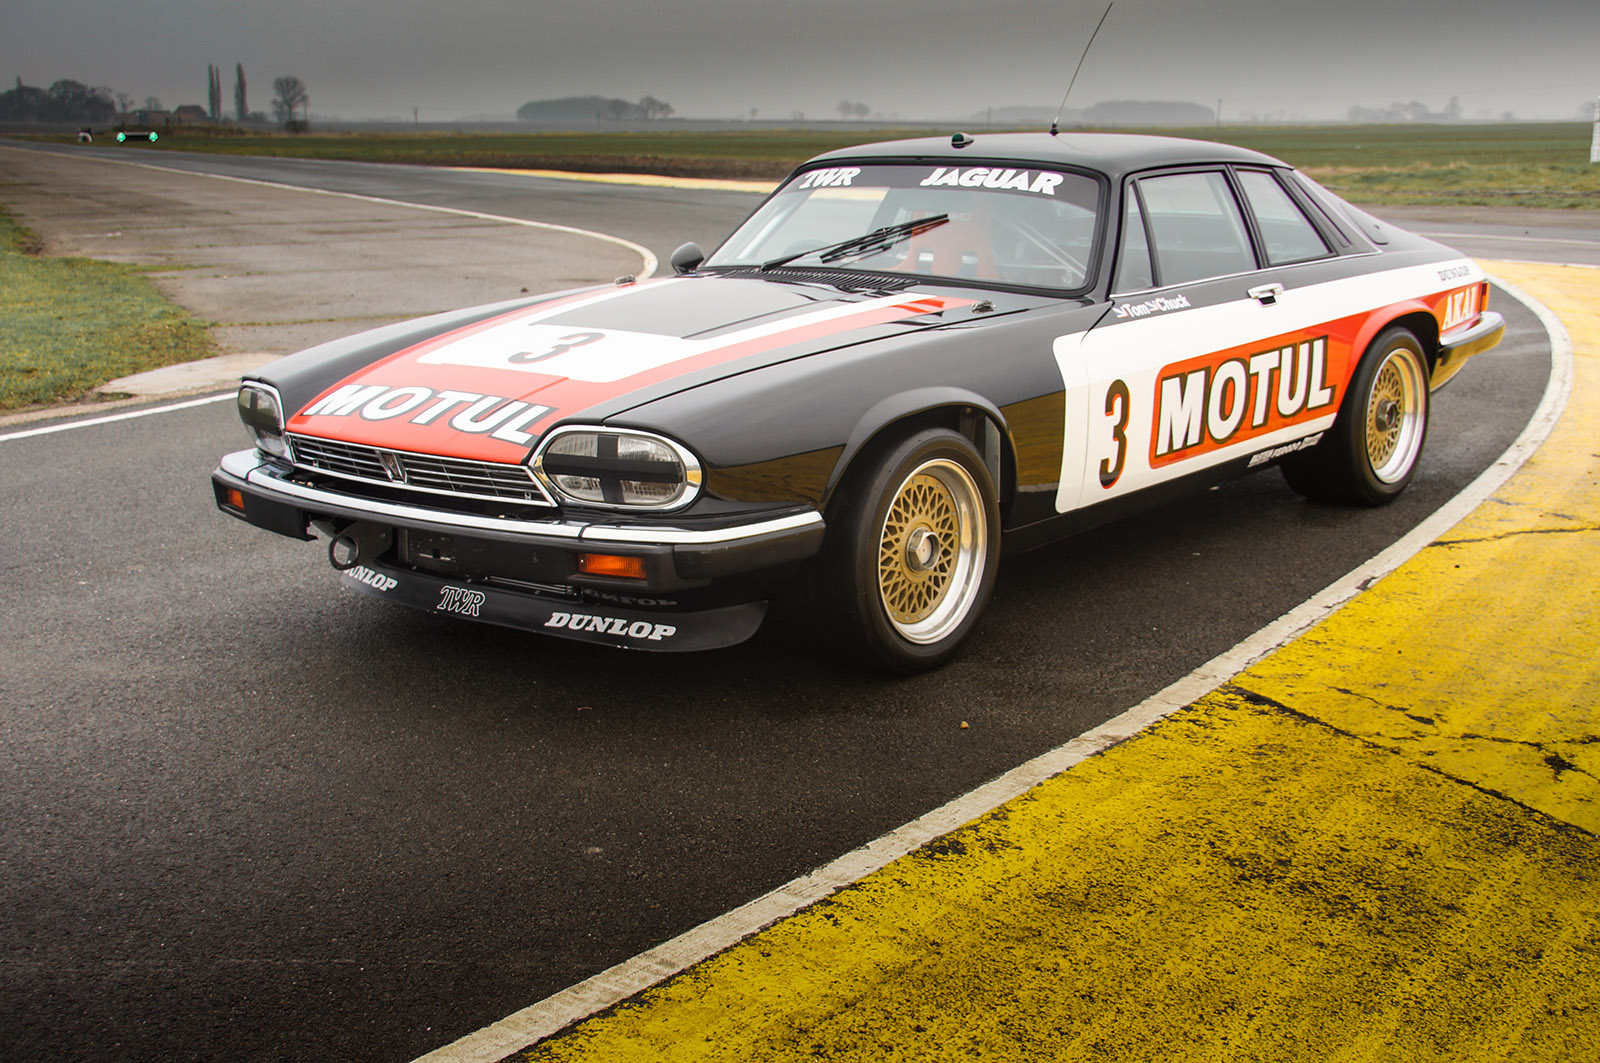 jaguar_twr_xjs_walkinshaw_wilkinson_sayer_selection_left_front_profile.jpg